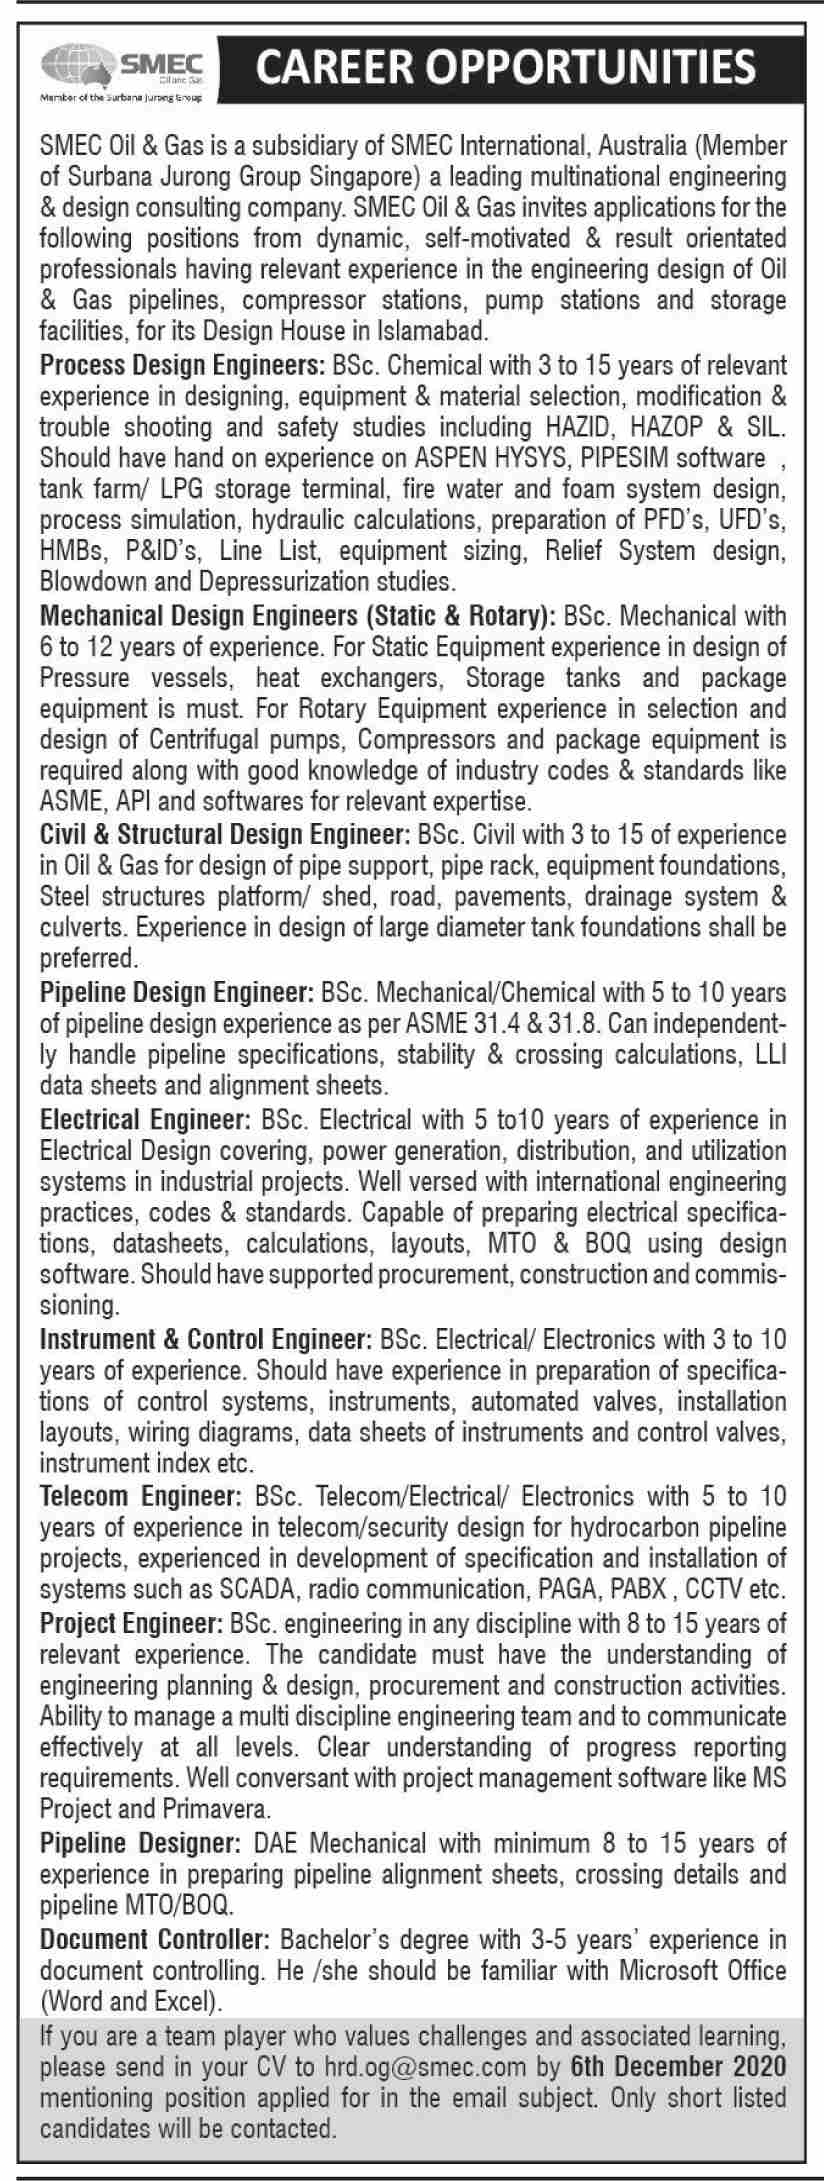 SMEC Oil & Gas Jobs November 2020